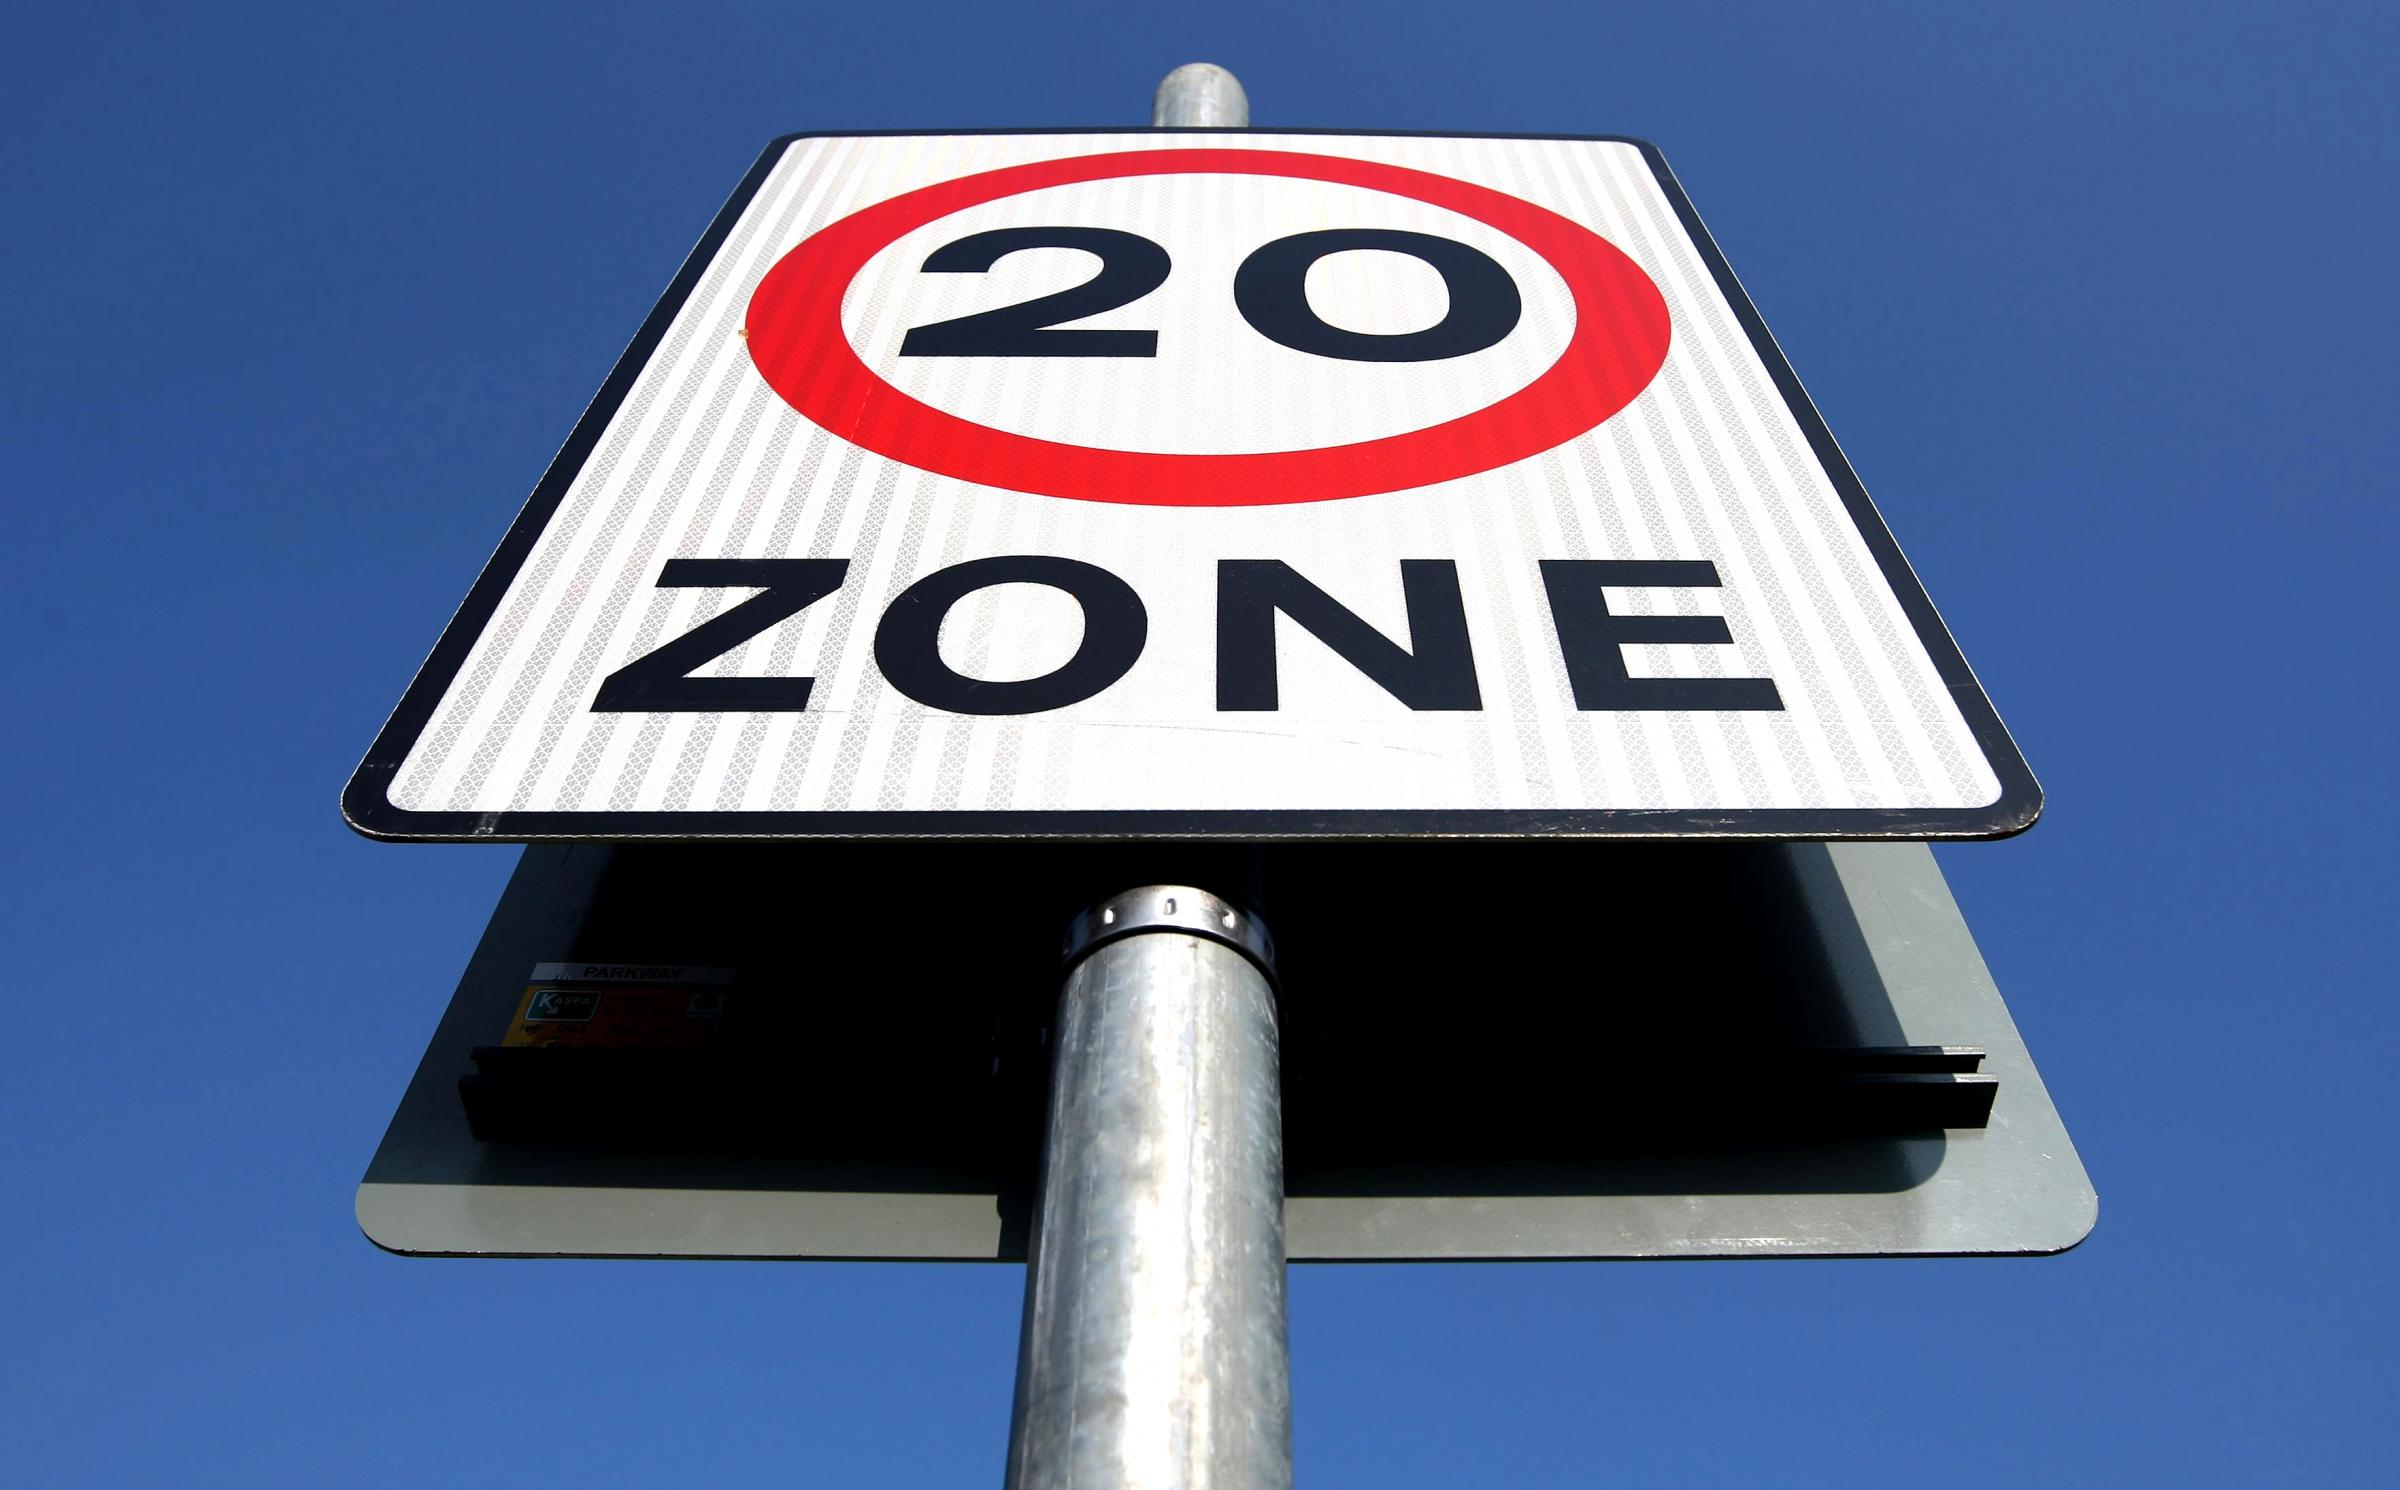 File photo dated 21/04/09 of a 20mph speed limit sign, as a study has found that more than four lives a year have been saved since the introduction of 20mph zones in one of Britain's major cities. PRESS ASSOCIATION Photo. Issue date: Tuesday February